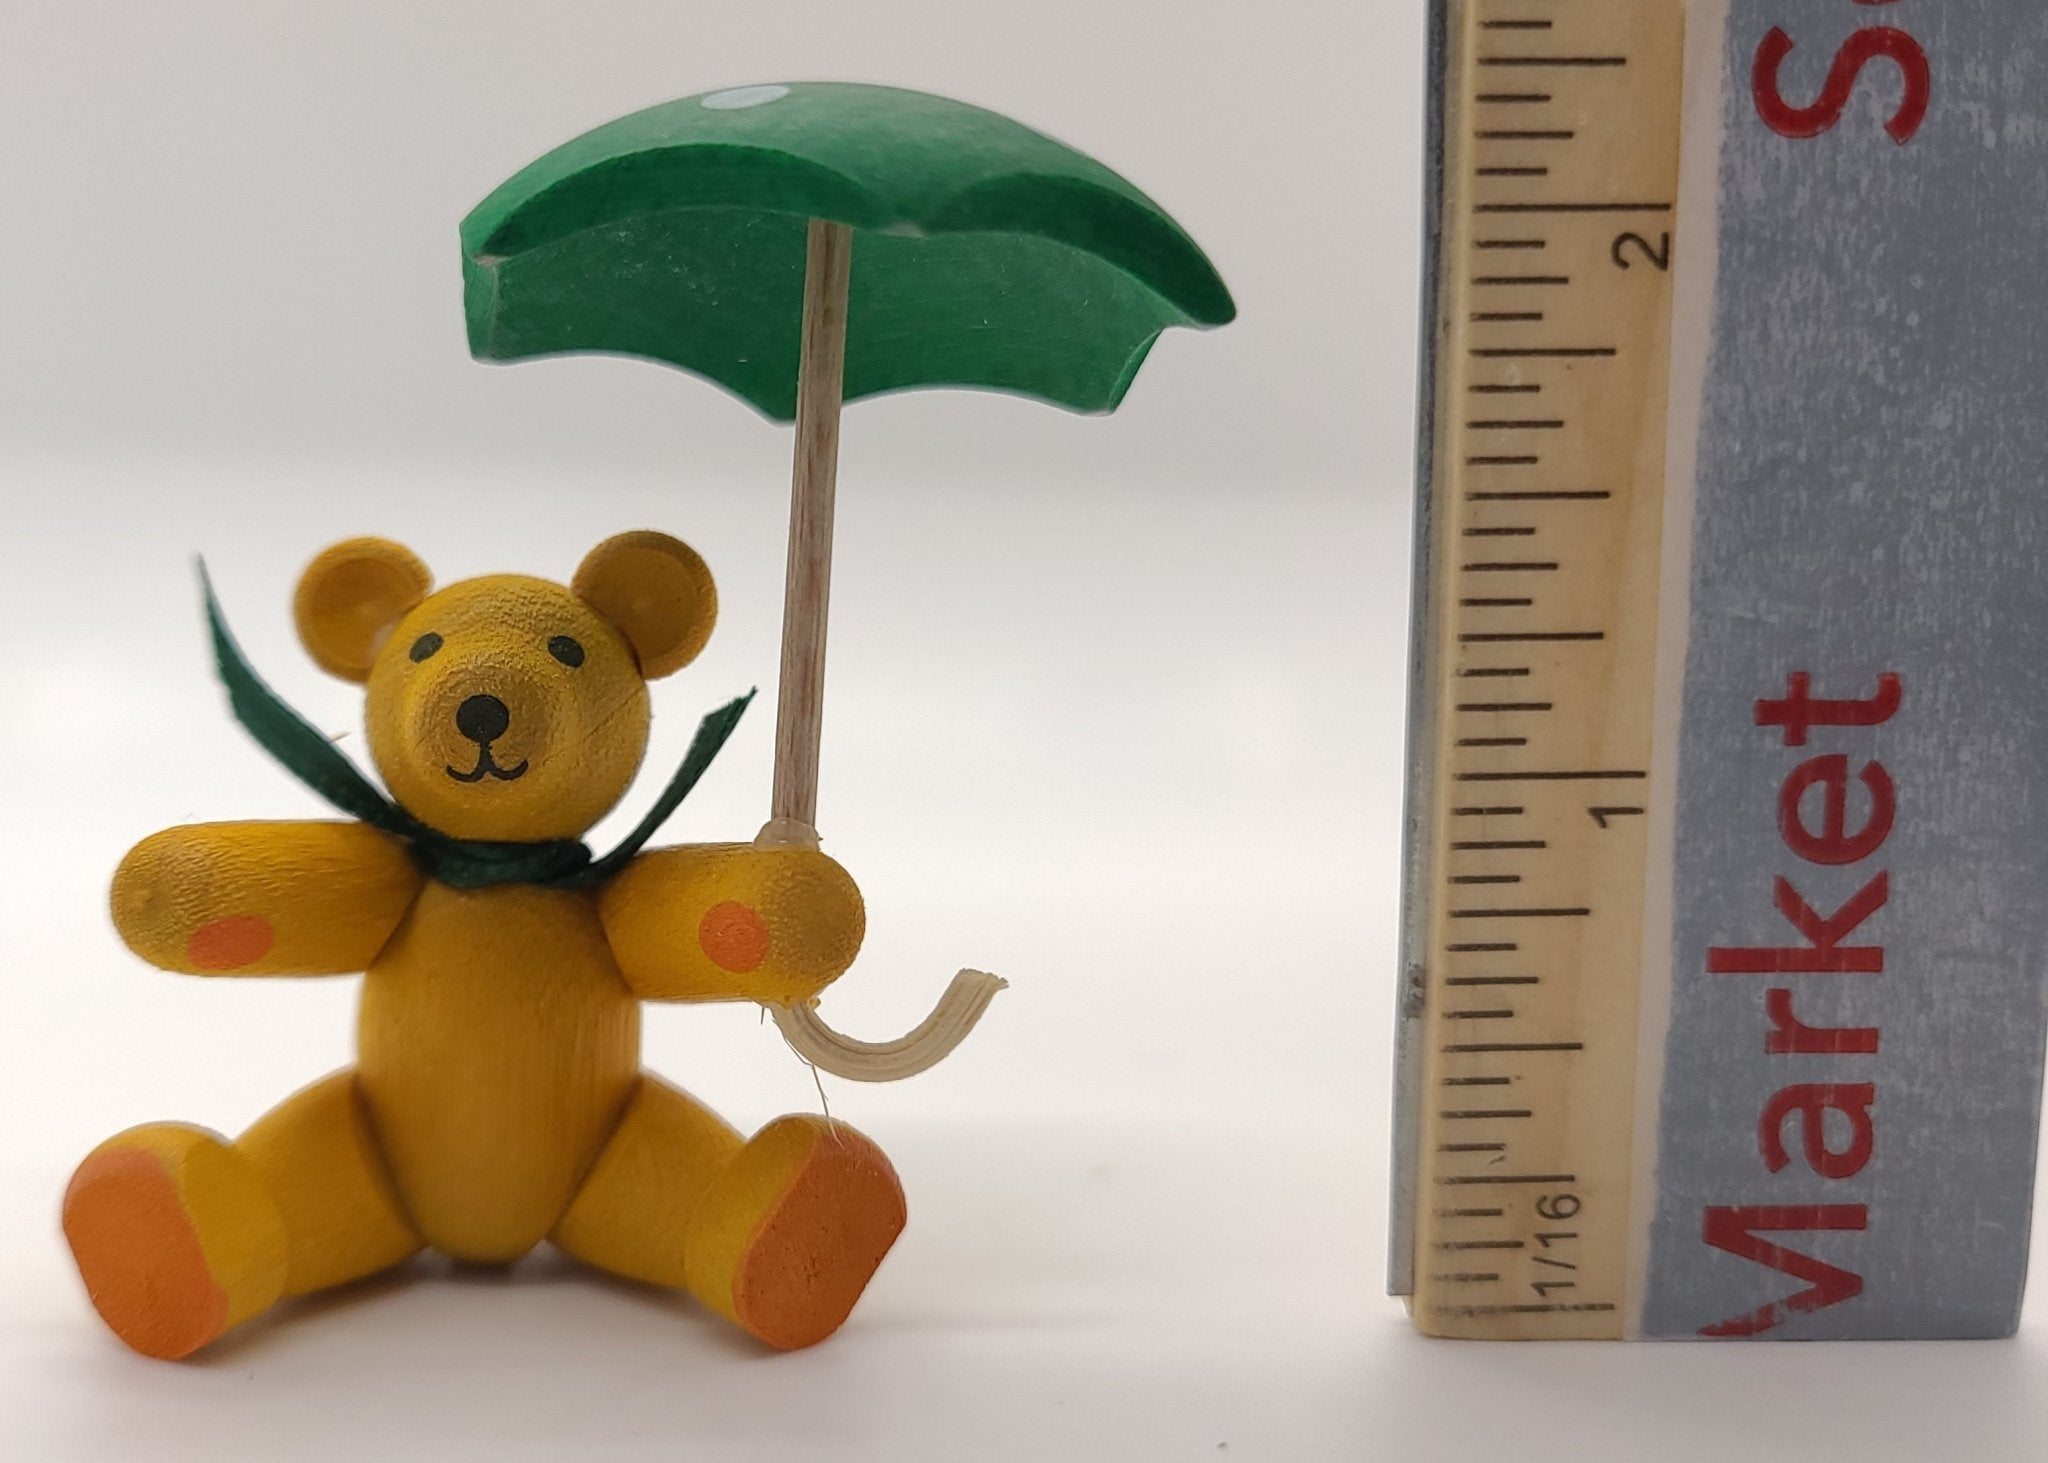 Handmade Yellow Bear with Umbrella - Schmidt Christmas Market Christmas Decoration